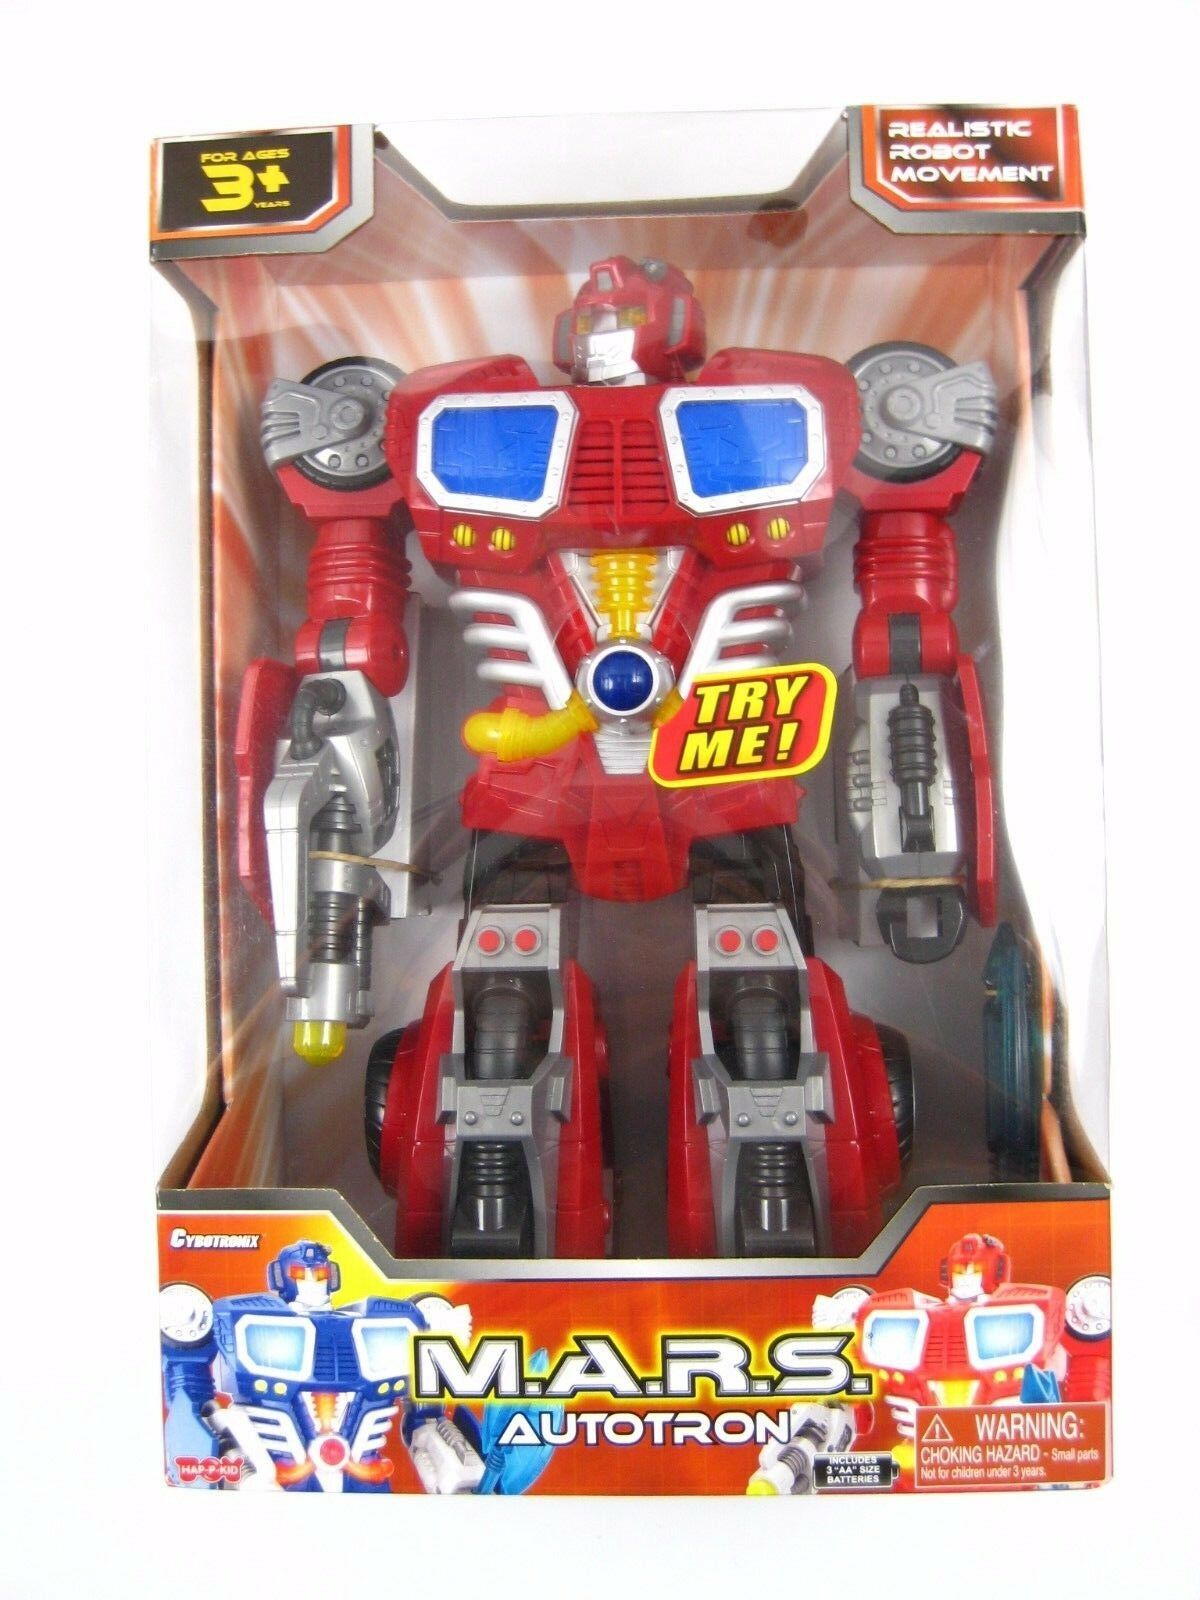 M.A.R.S. Cartron Walking Talking Robot rot Blau 14  Tall NEW IN BOX